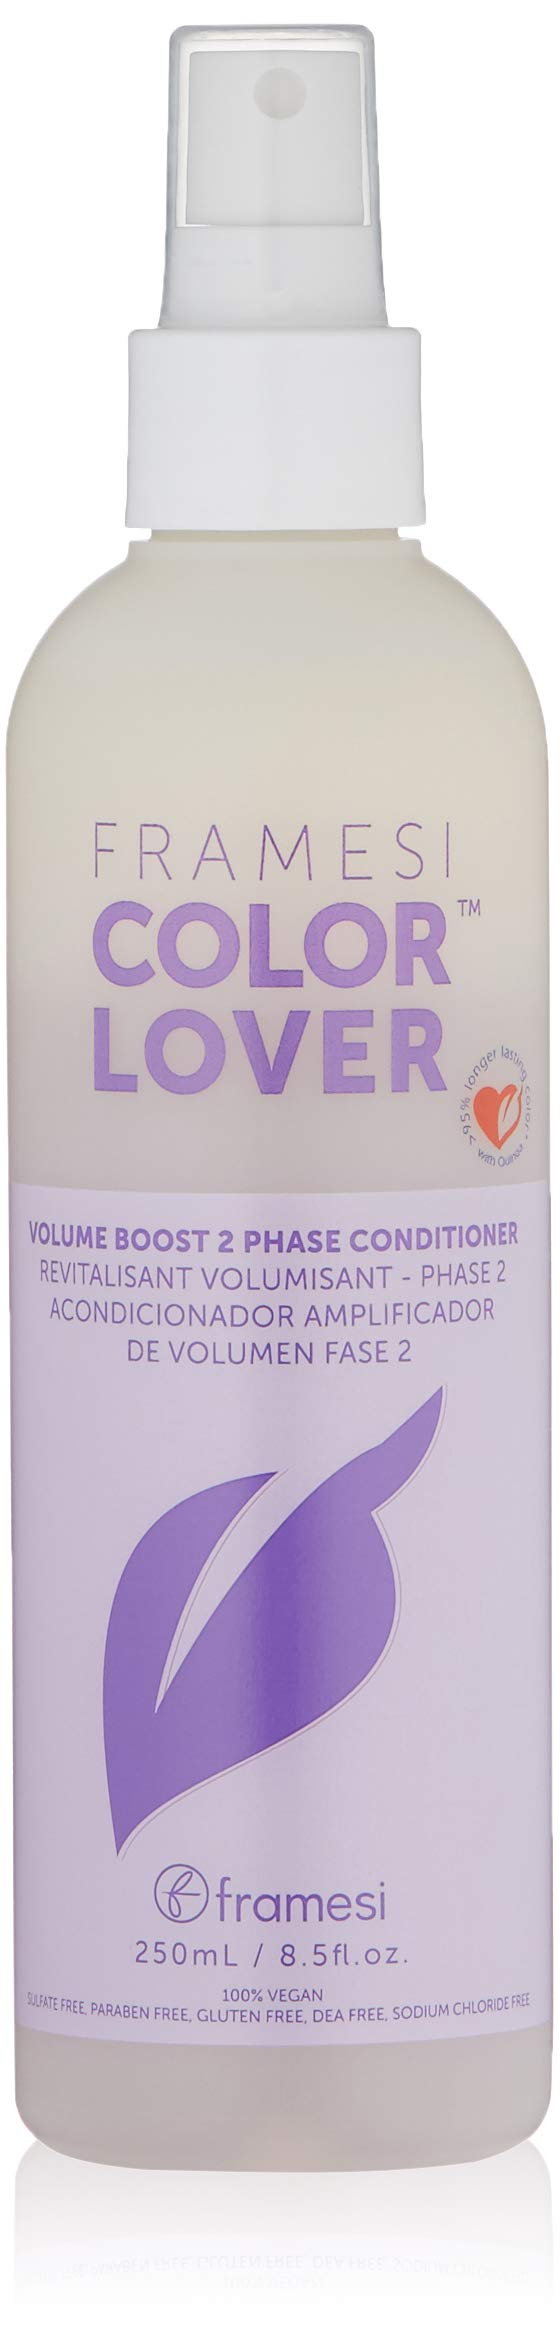 FRAMESI Color Lover Volume Boost 2 Phase Conditioner, Floral, 8.5 oz.